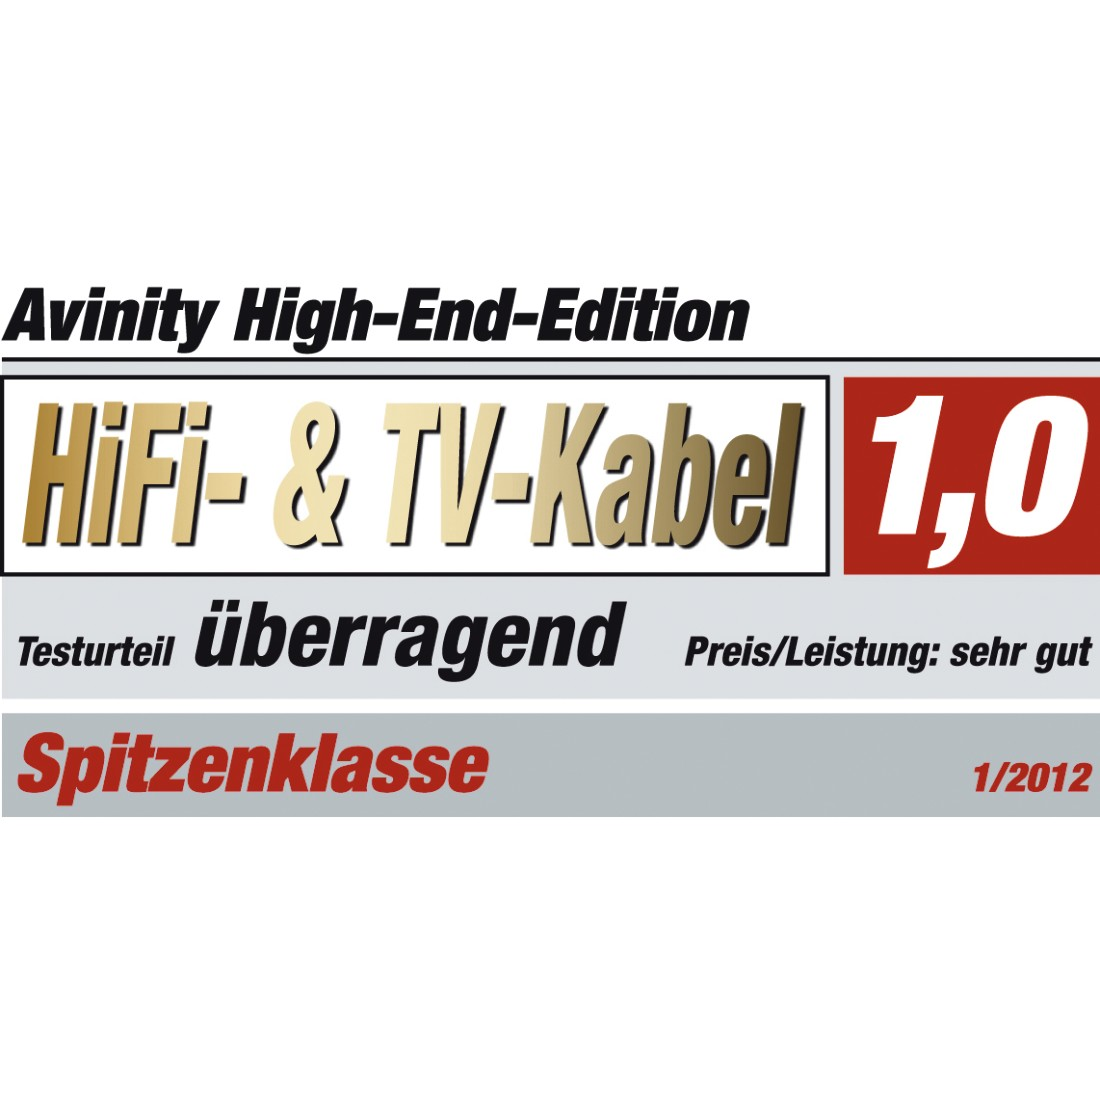 tex6 Druckfähiges Testurteil 6 - Avinity, High Speed HDMI™-Kabel, St. - St., Filter, oval, vergoldet, Ethernet, 2 m